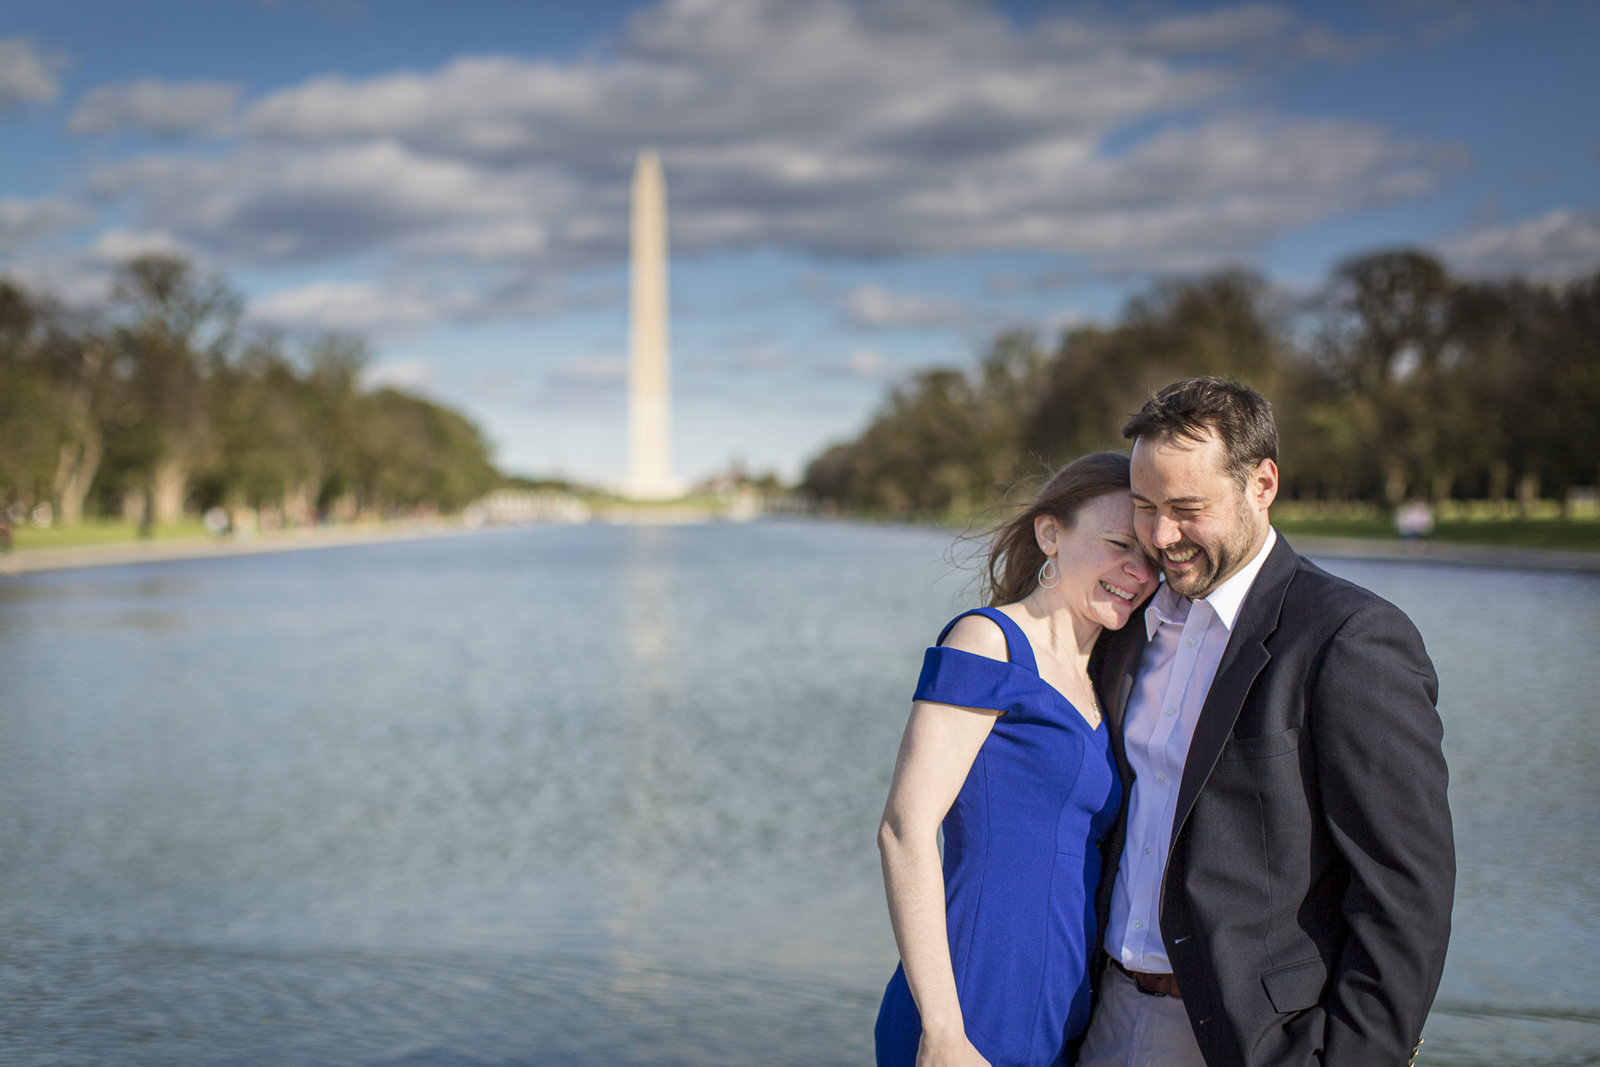 national-mall-washington-dc-engagement-andrew-morrell-1